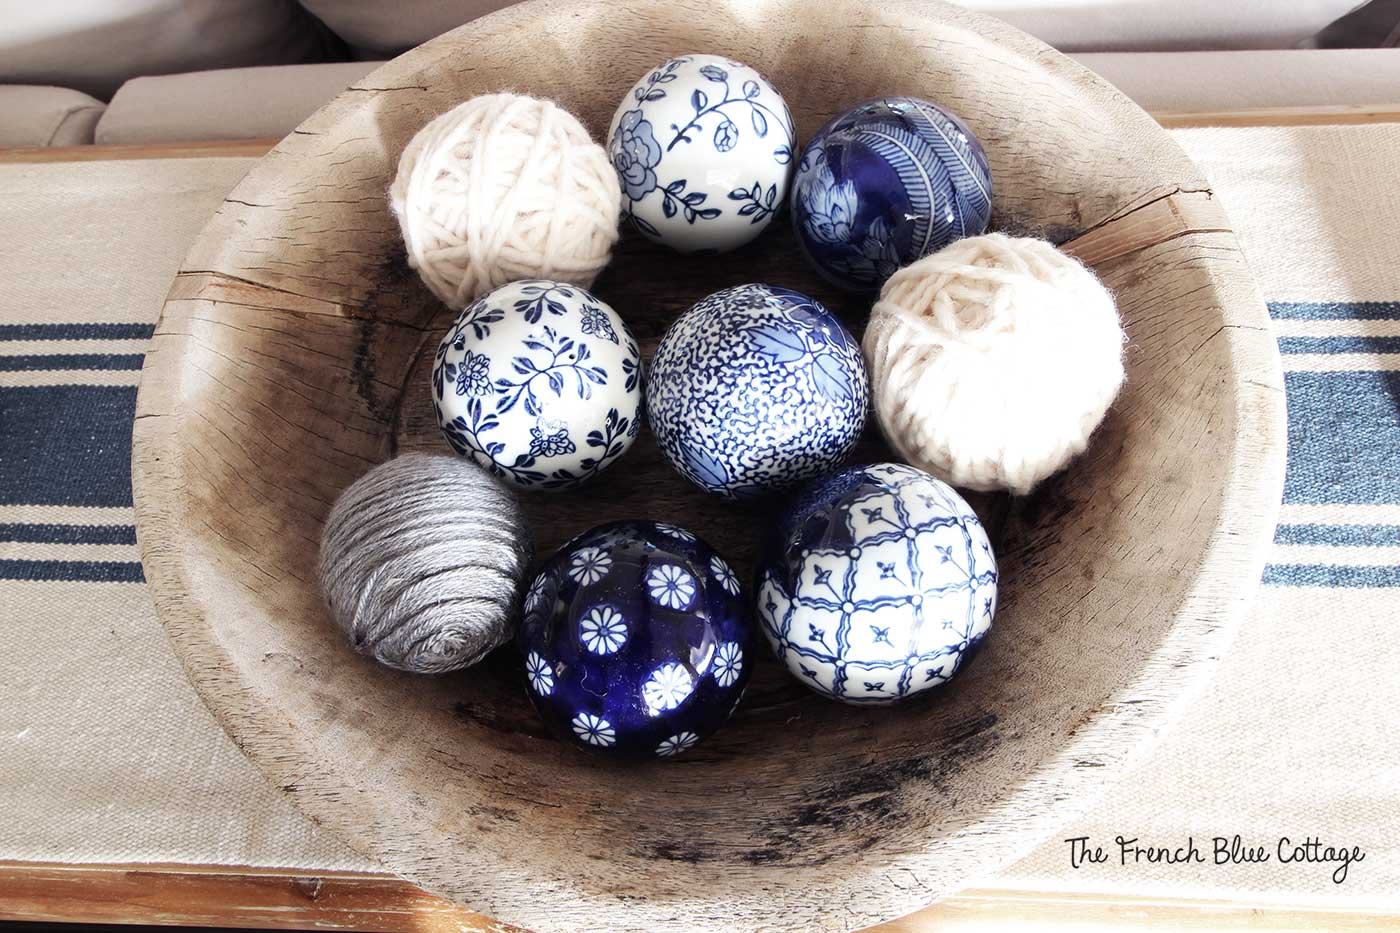 Yarn and ceramic balls in a rustic bowl.